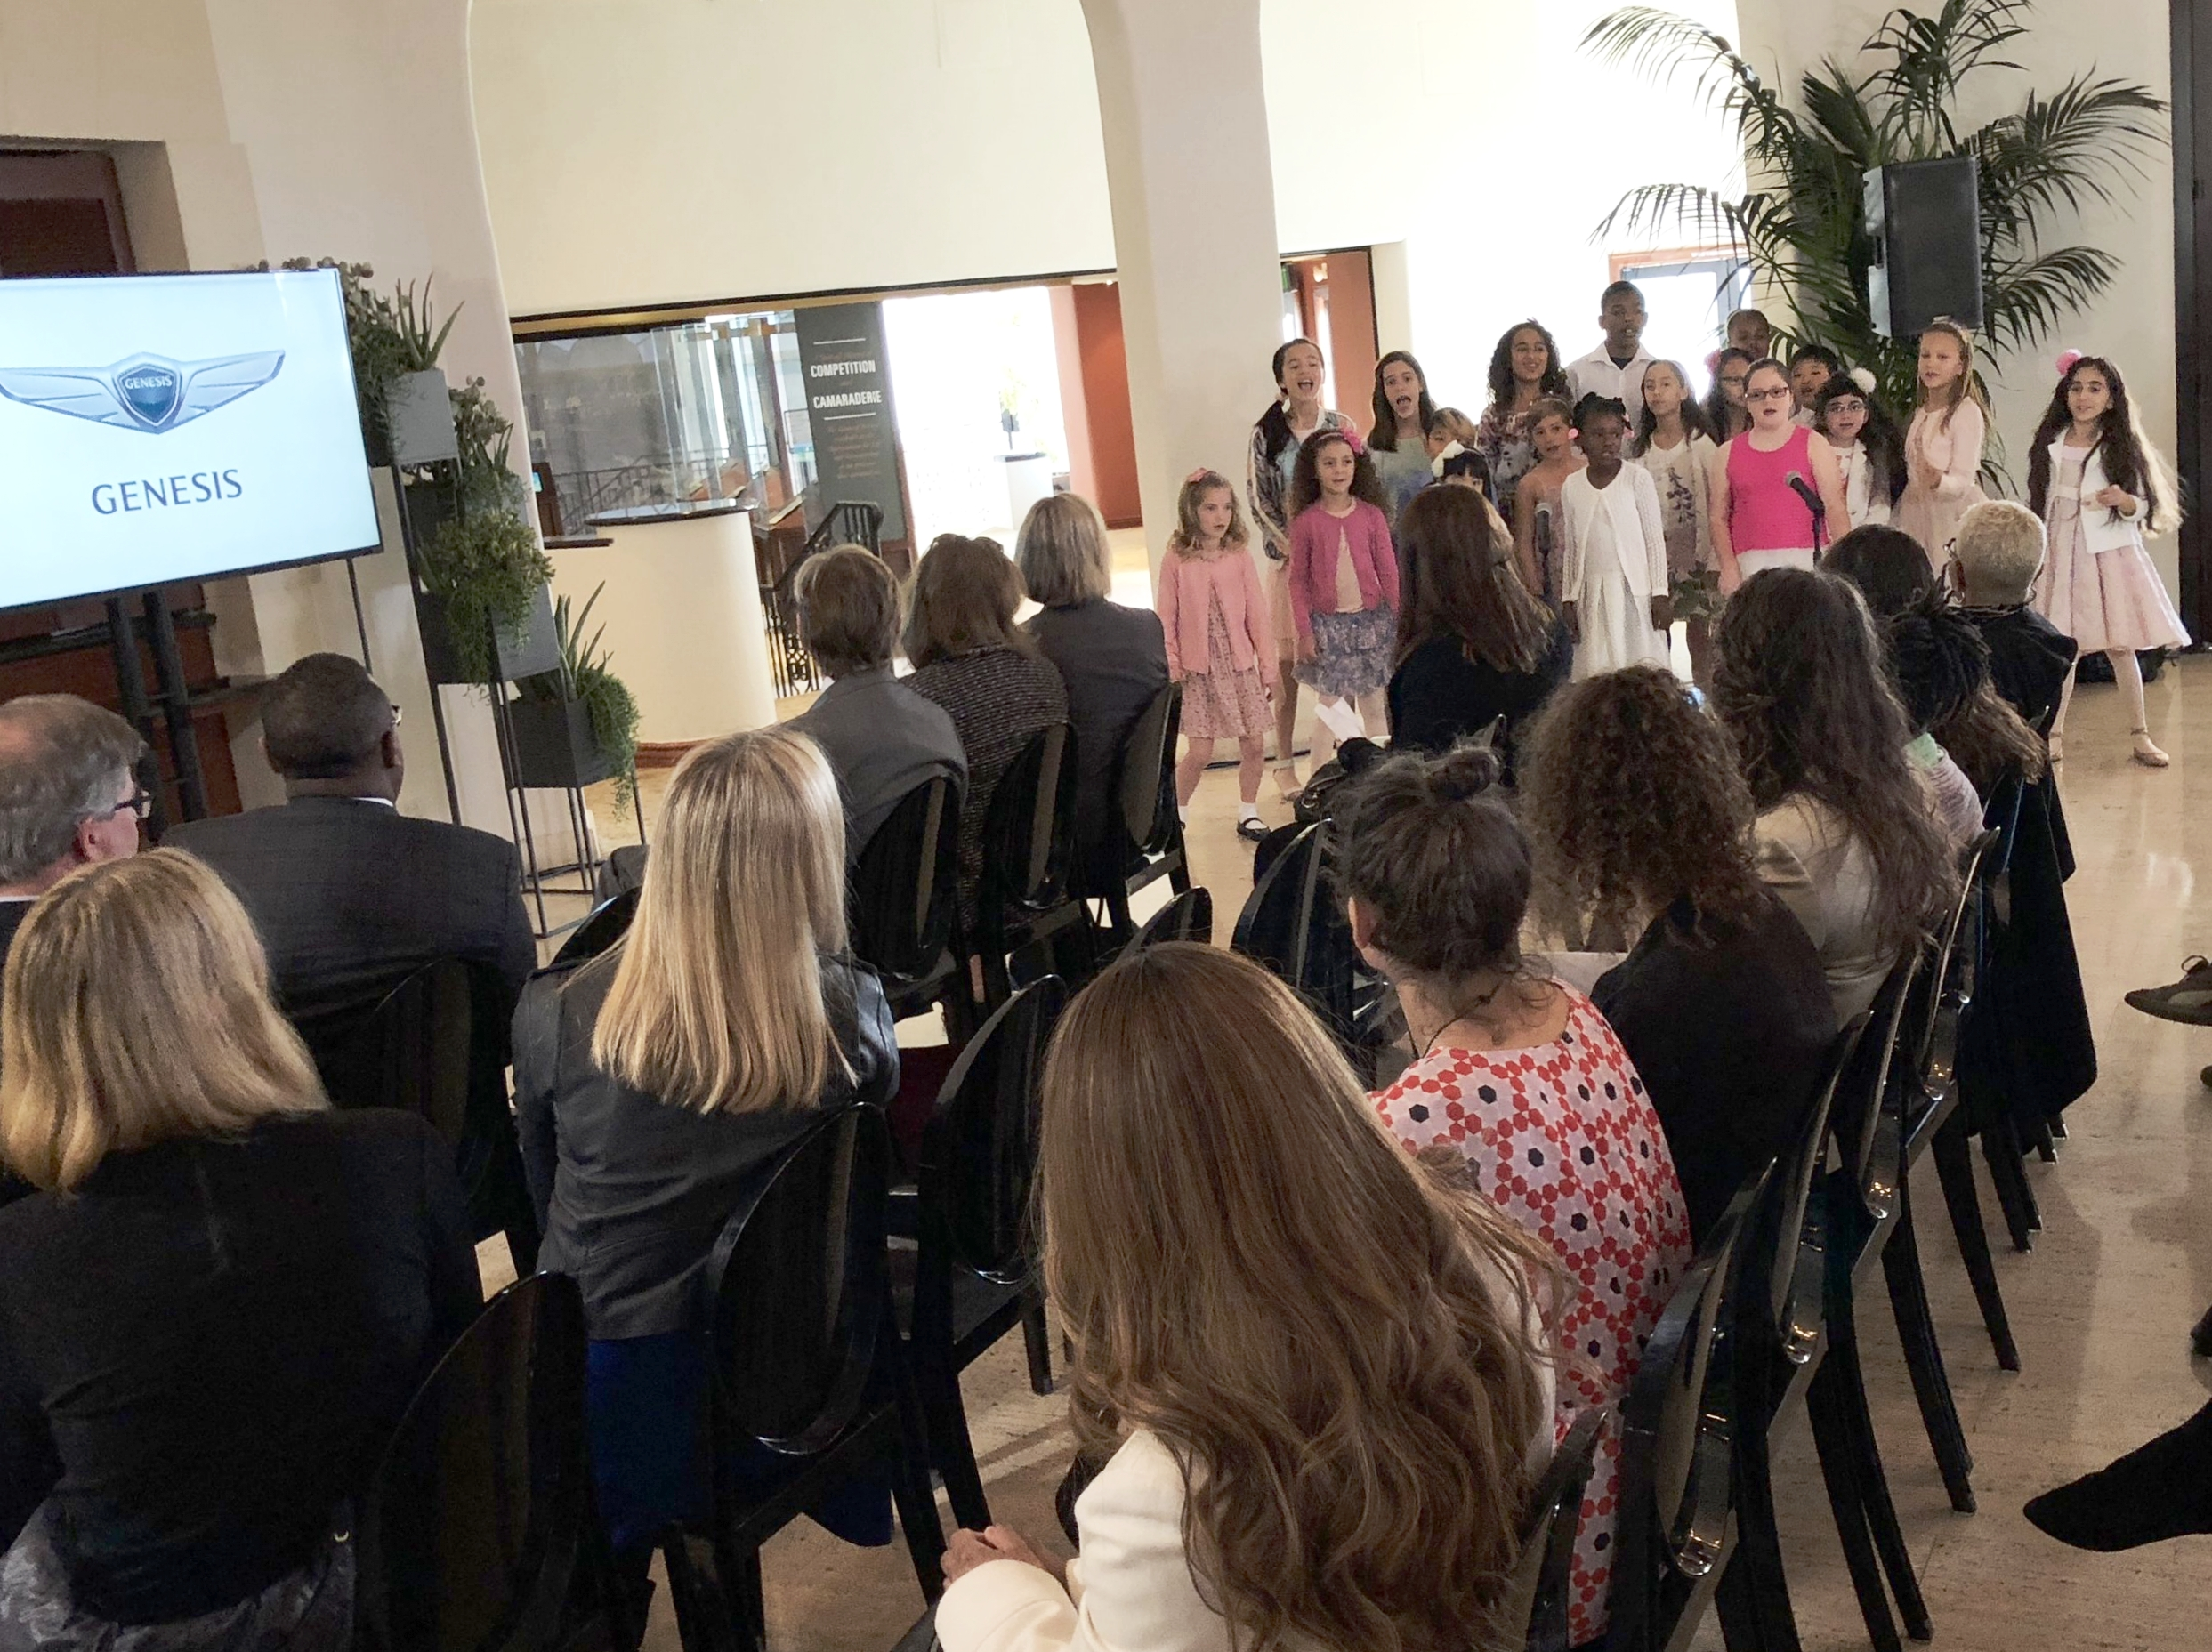 During the Genesis-Getty special grant presentation ceremony on Tuesday, February 13, students from the West Los Angeles Children's choir performed three songs.